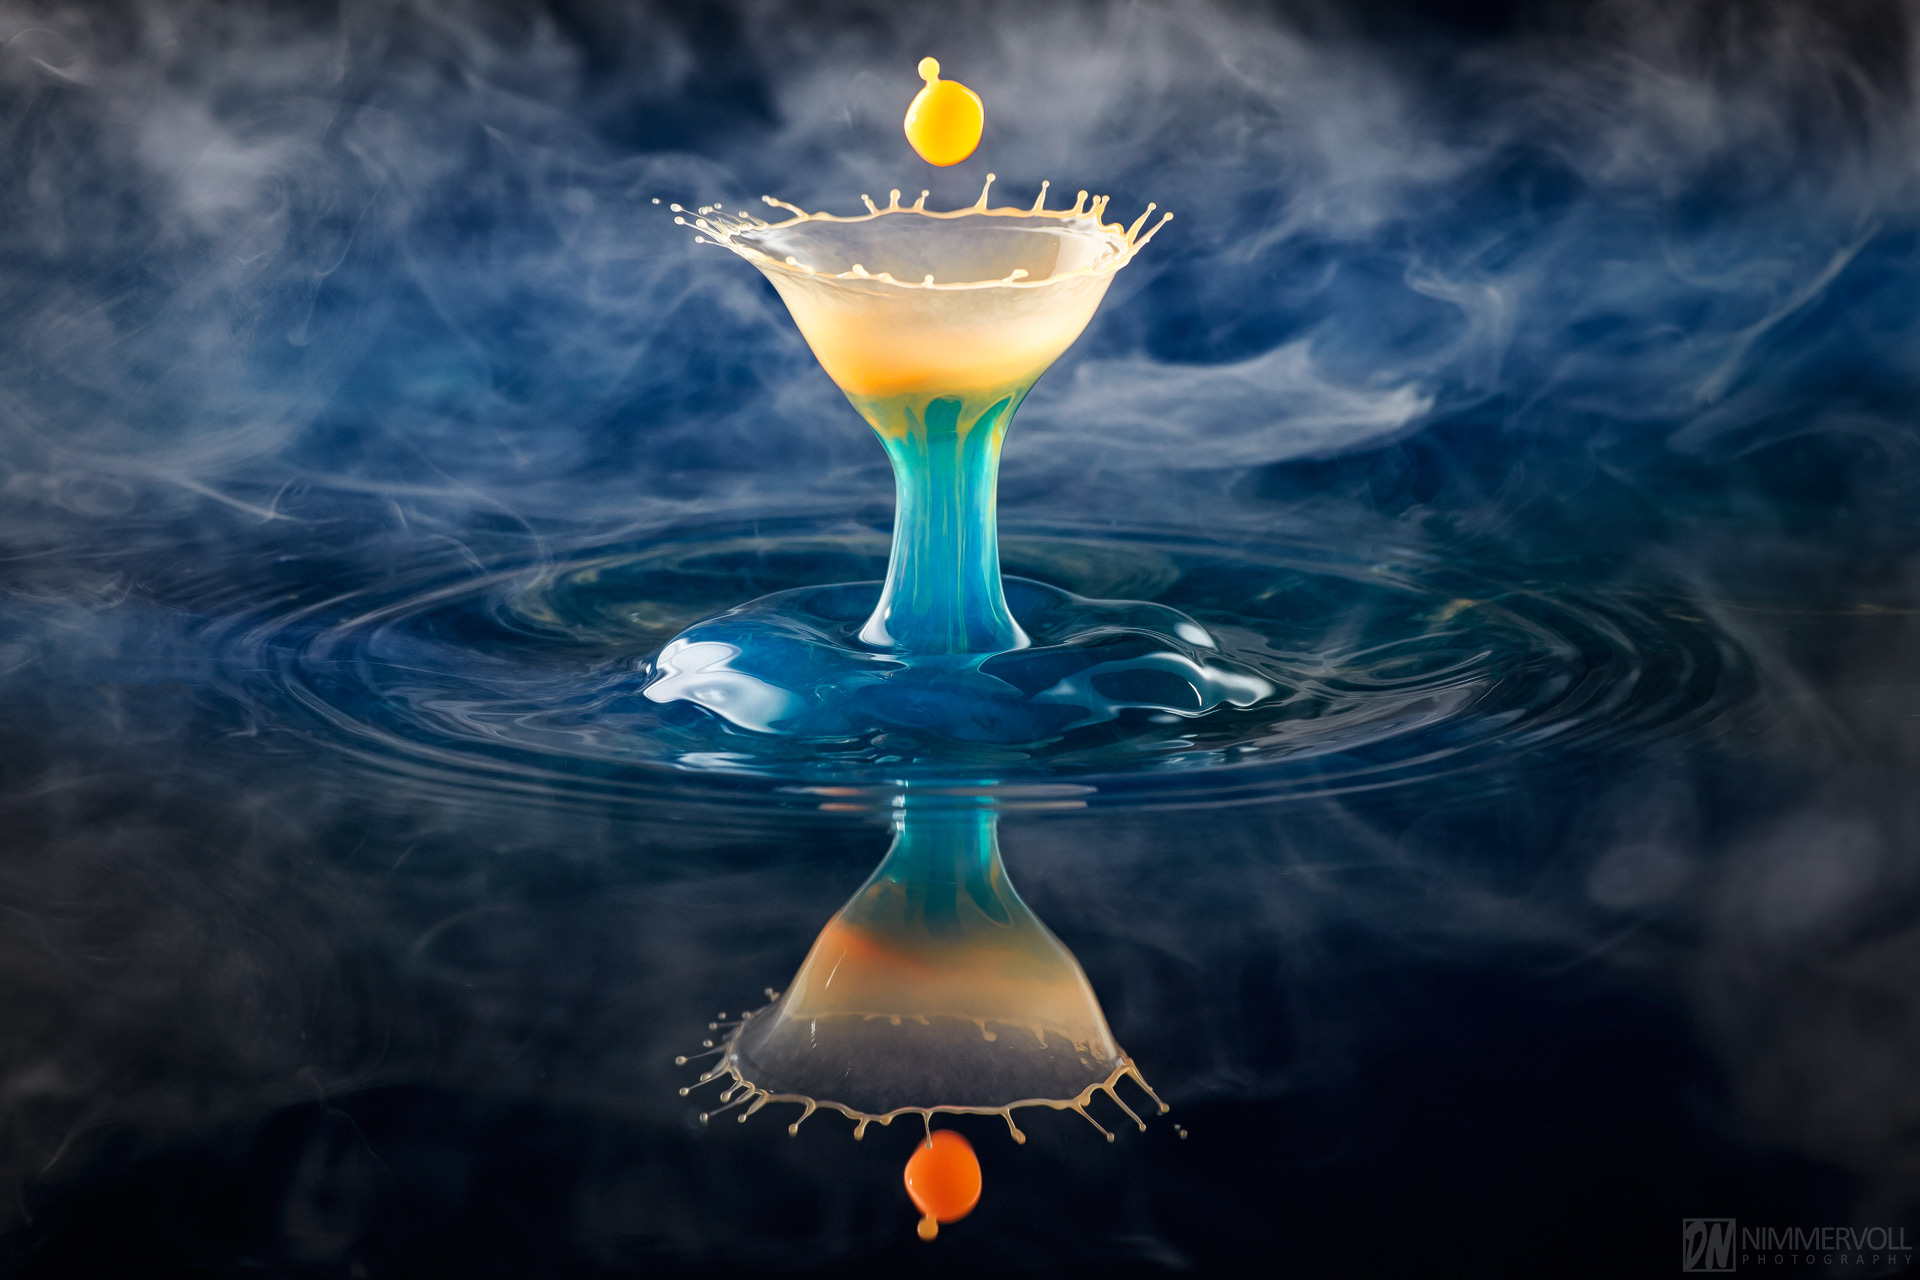 Highspeed Fotografie - Liquid Art Wassertropfen - Nimmervoll background image